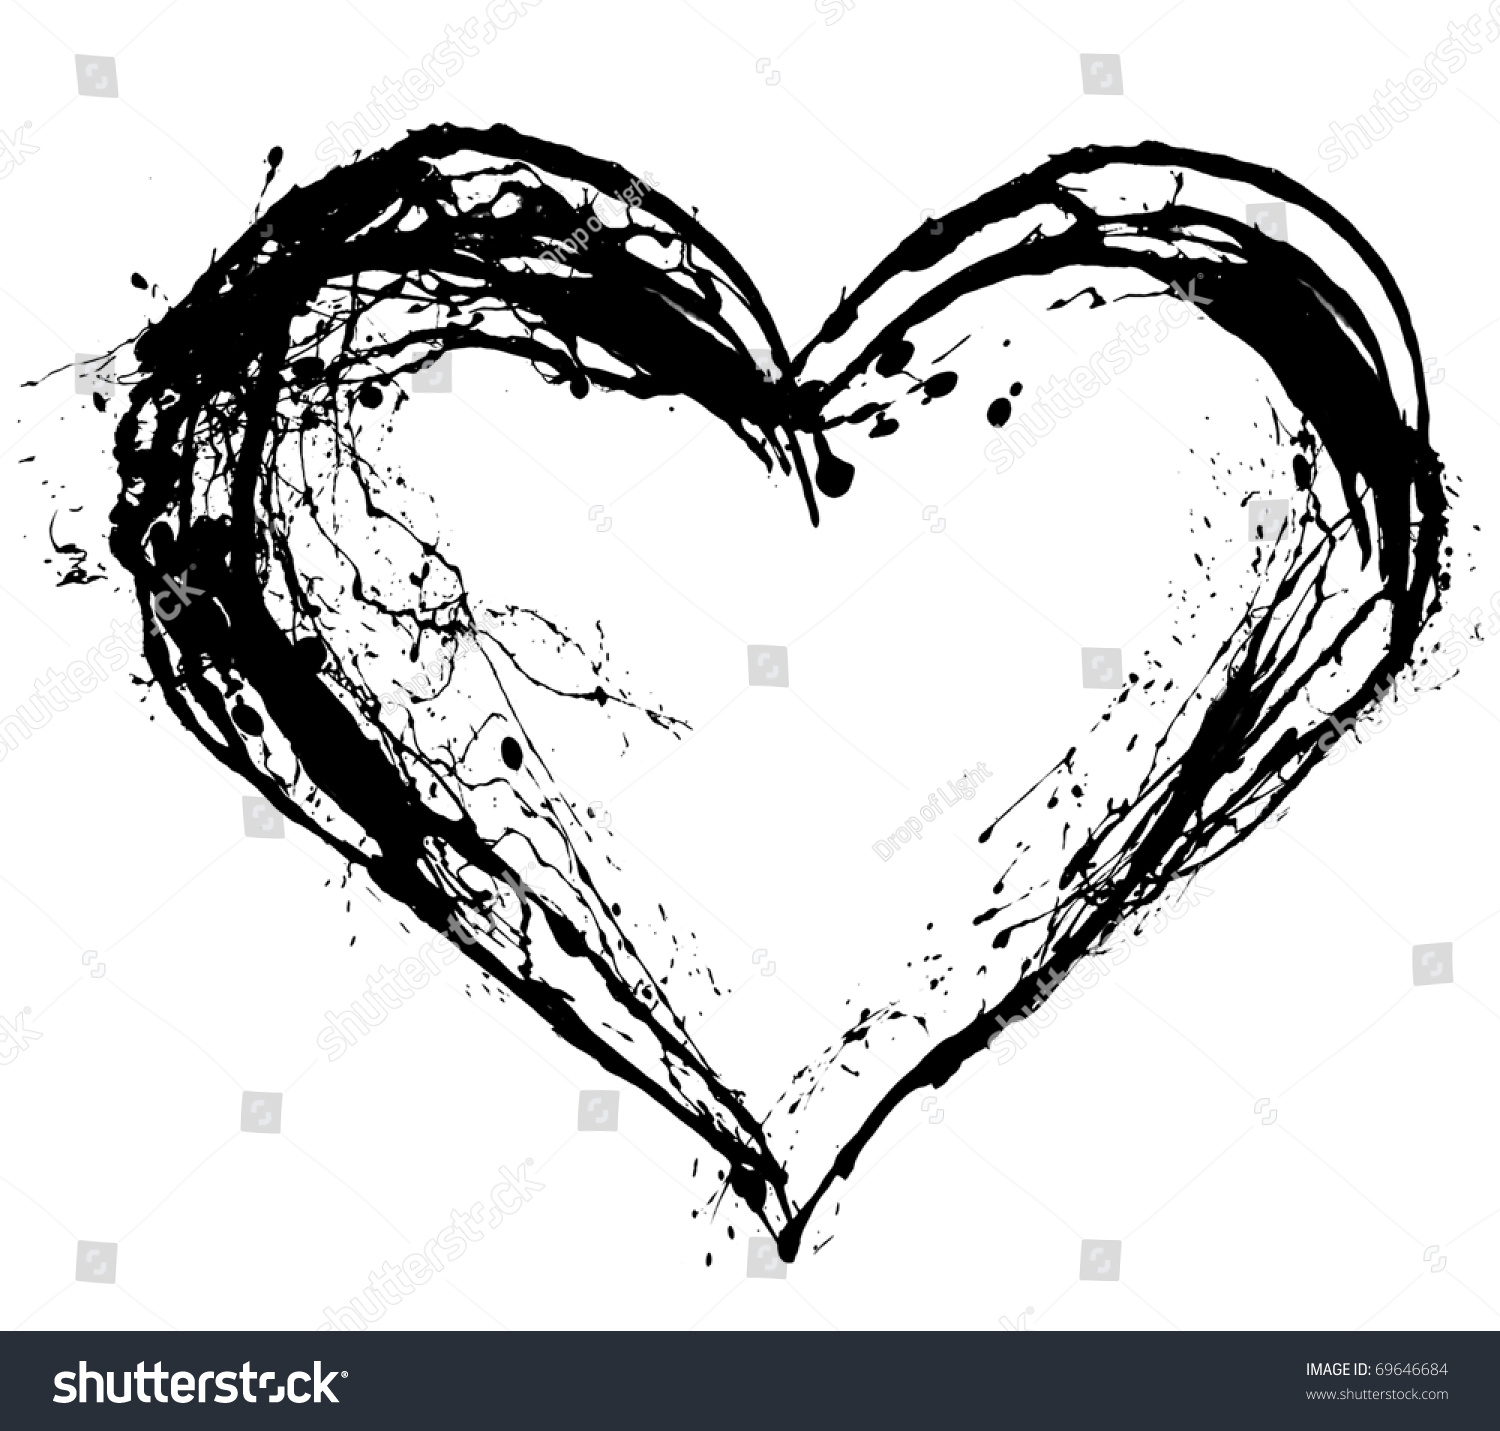 Heart Images Black And White Abstract valentine black heart on white ...